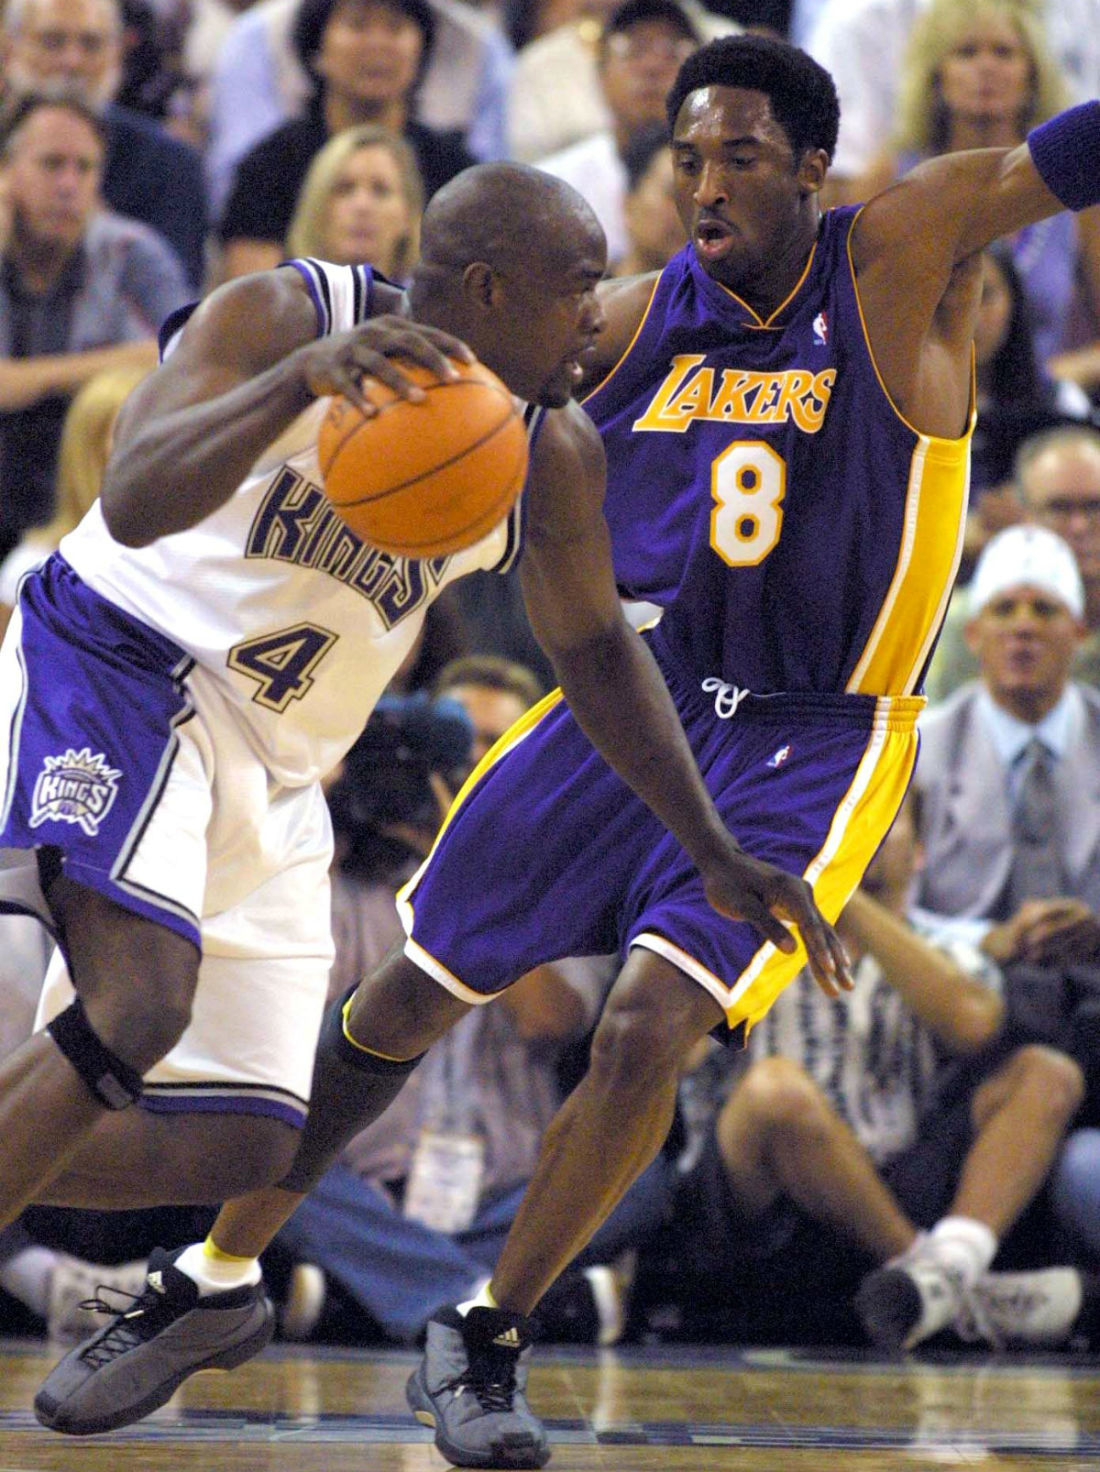 Kobe Bryant Best Games Jersey Number 8 & 24 | Sole Collector